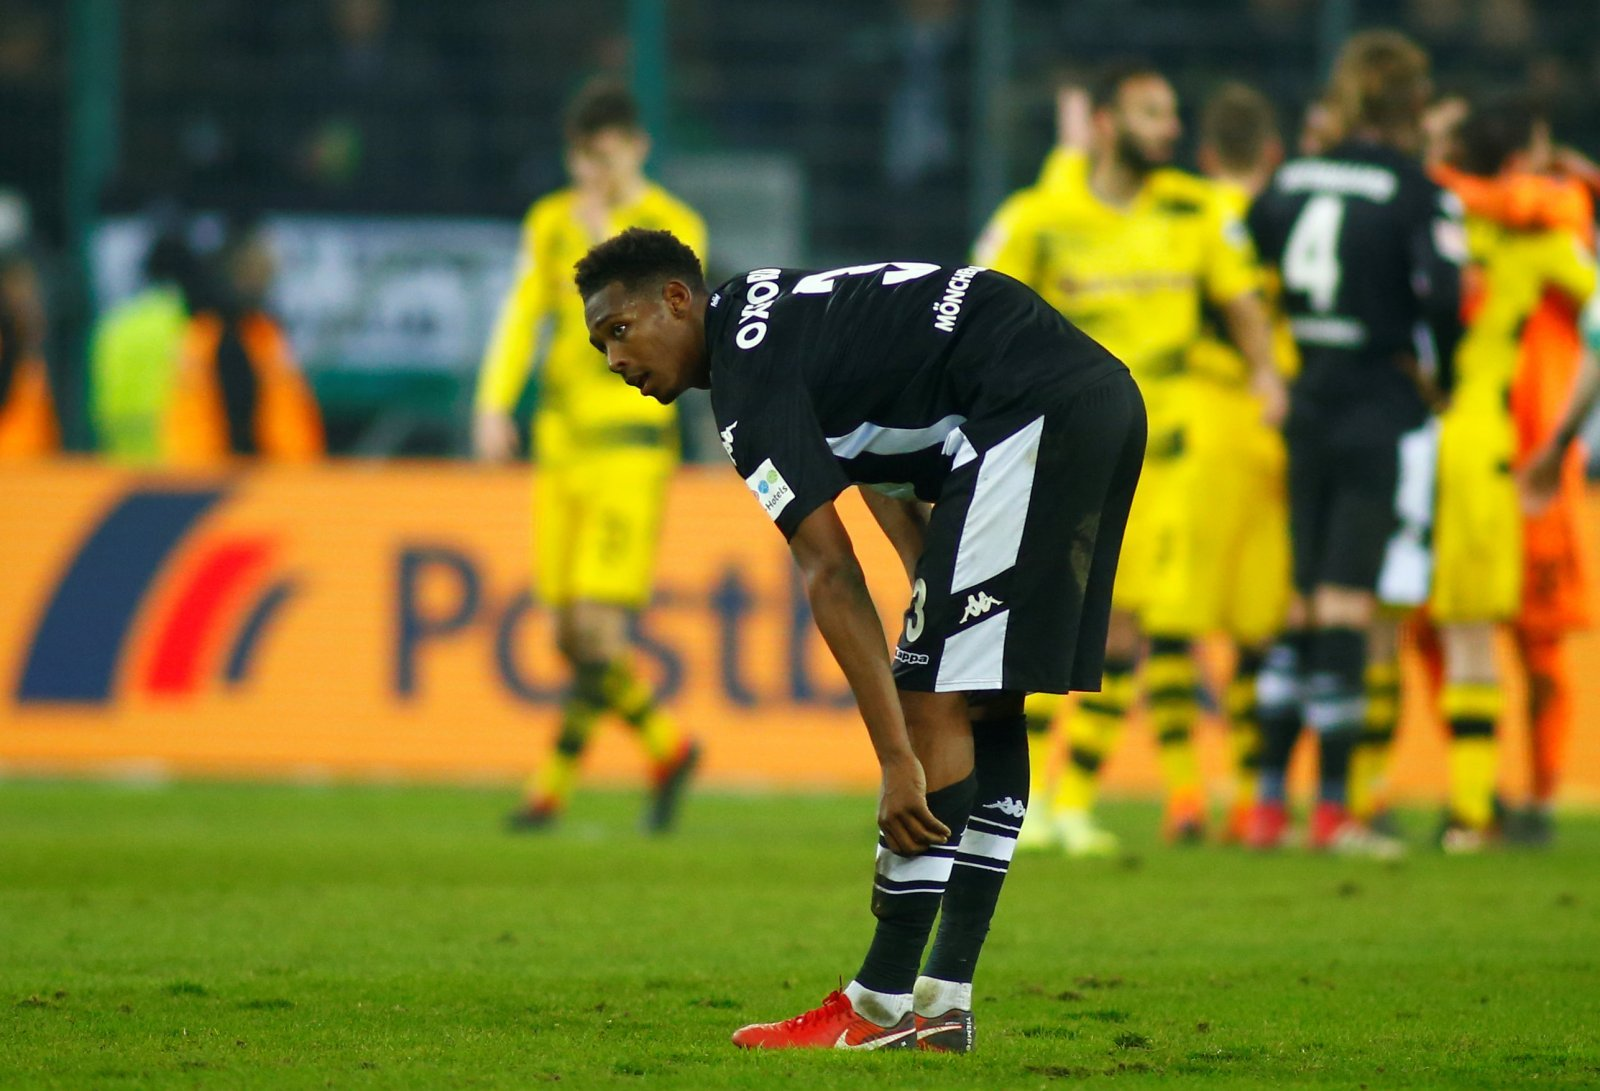 Tony Pulis should seek to make a move for West Ham's Reece Oxford